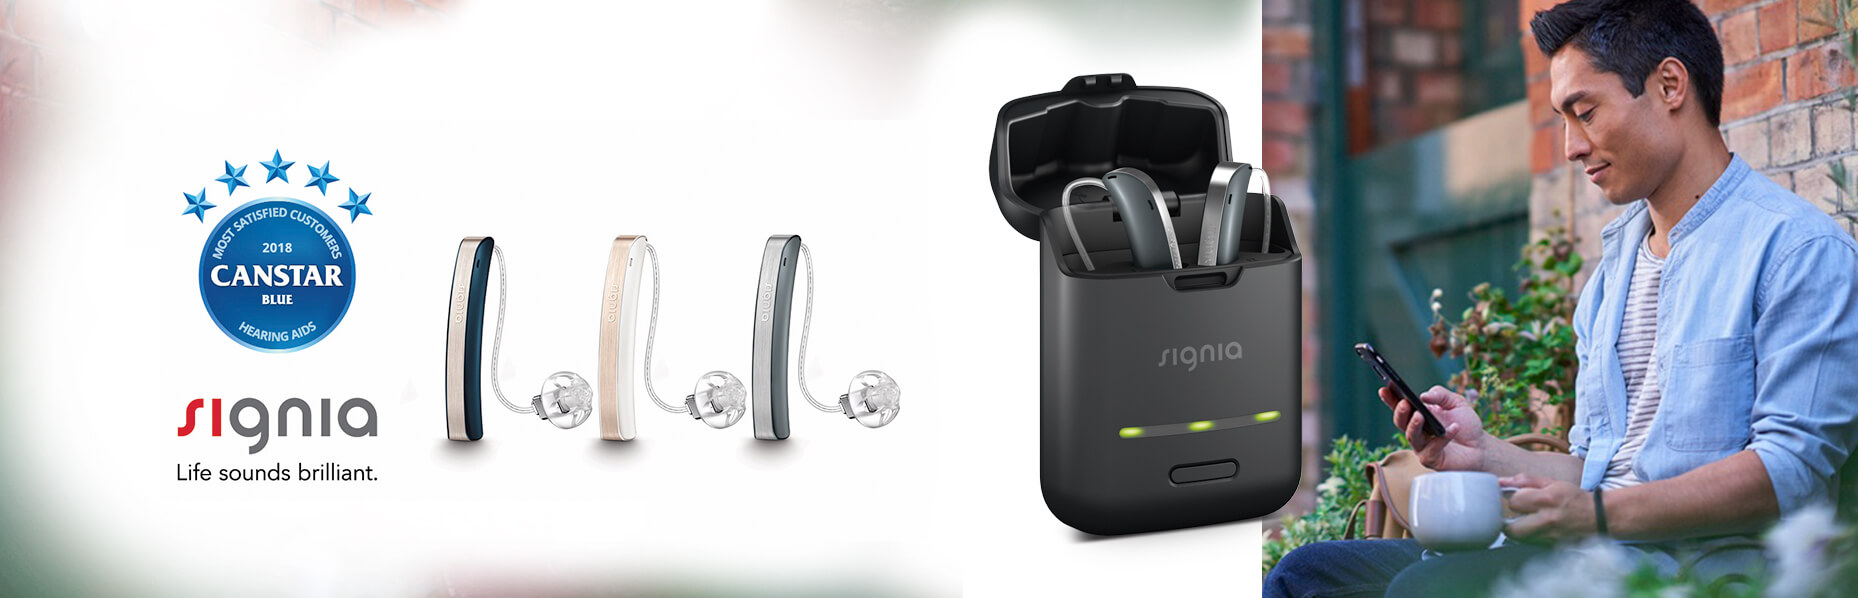 A banner image split into two parts separated by an enlarged image of the Signia styletto hearing aid on its charging case. The right image shows a man on his phone whilst the left side shows a logo of Canstar award and the three colour choices of the Styletto hearing aids.